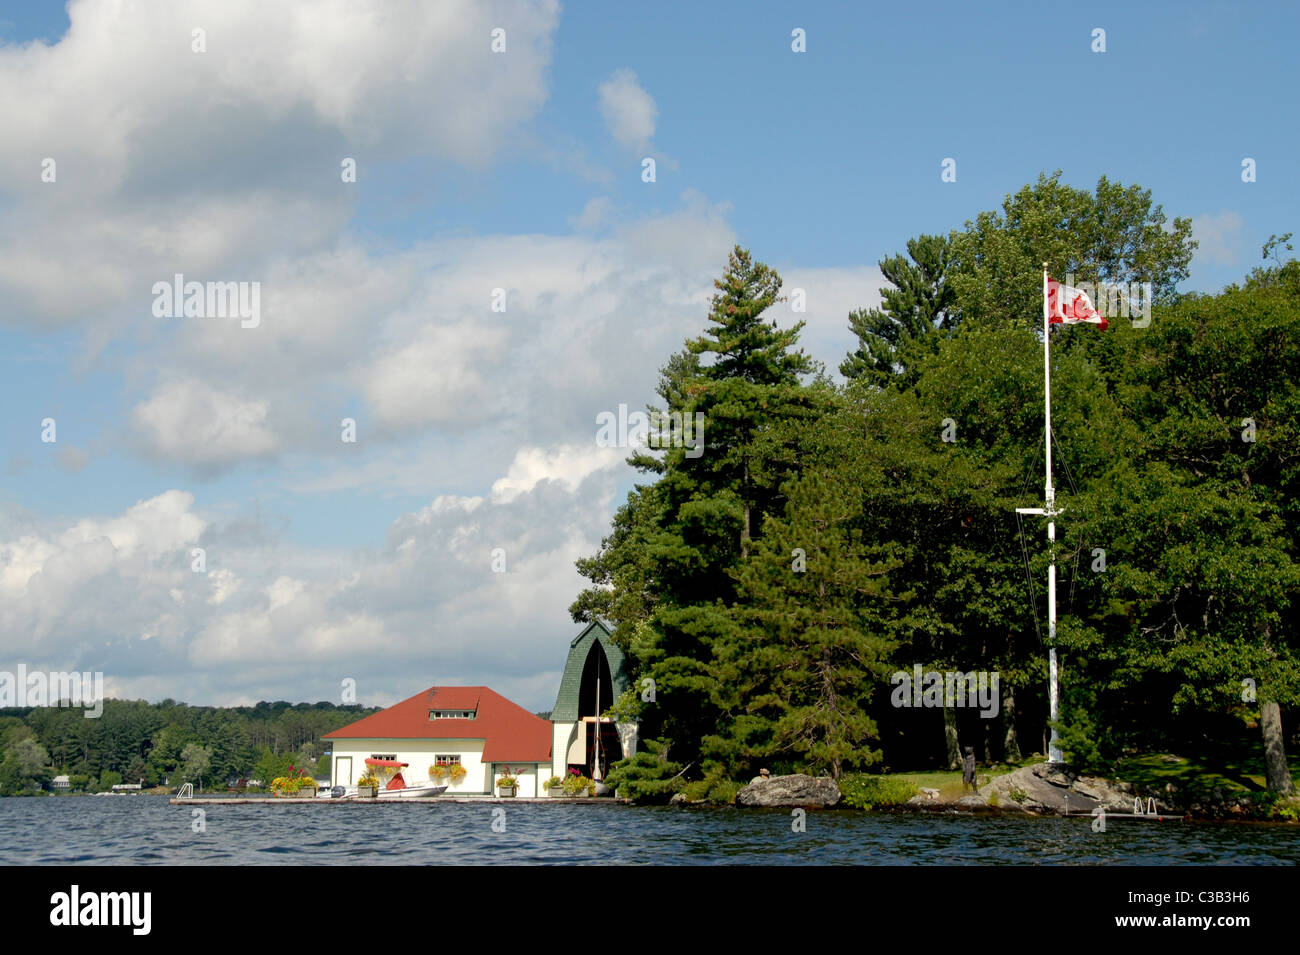 A holiday home on Lake Muskoka in Ontario's Cottage country in Canada. Note the church-shaped boat house. - Stock Image